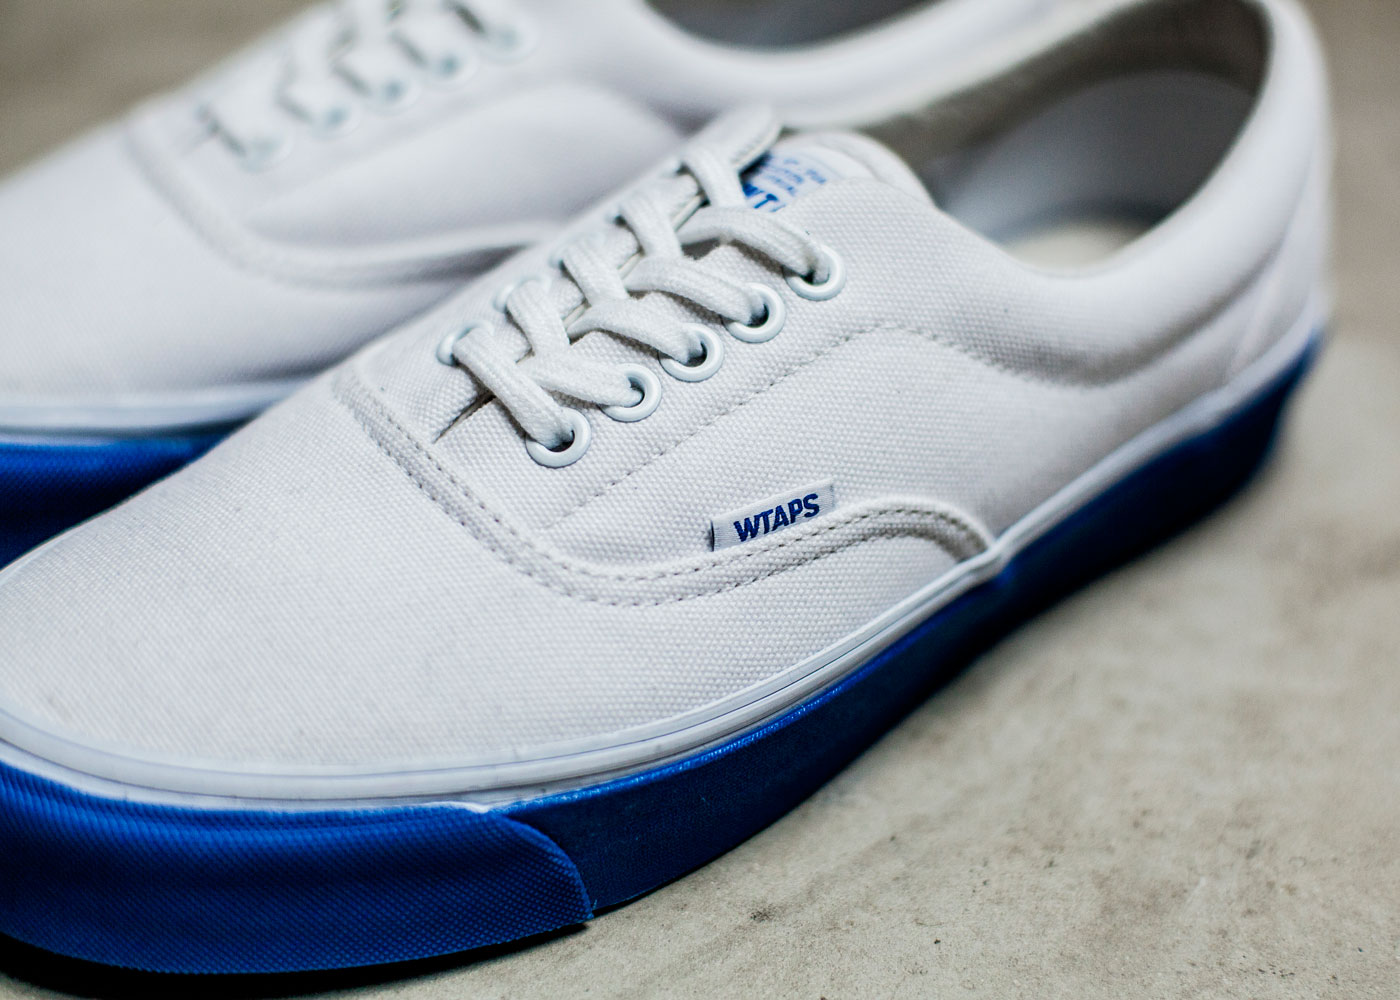 Vault-by-Vans-x-WTAPS_OG-Era-LX_close-up